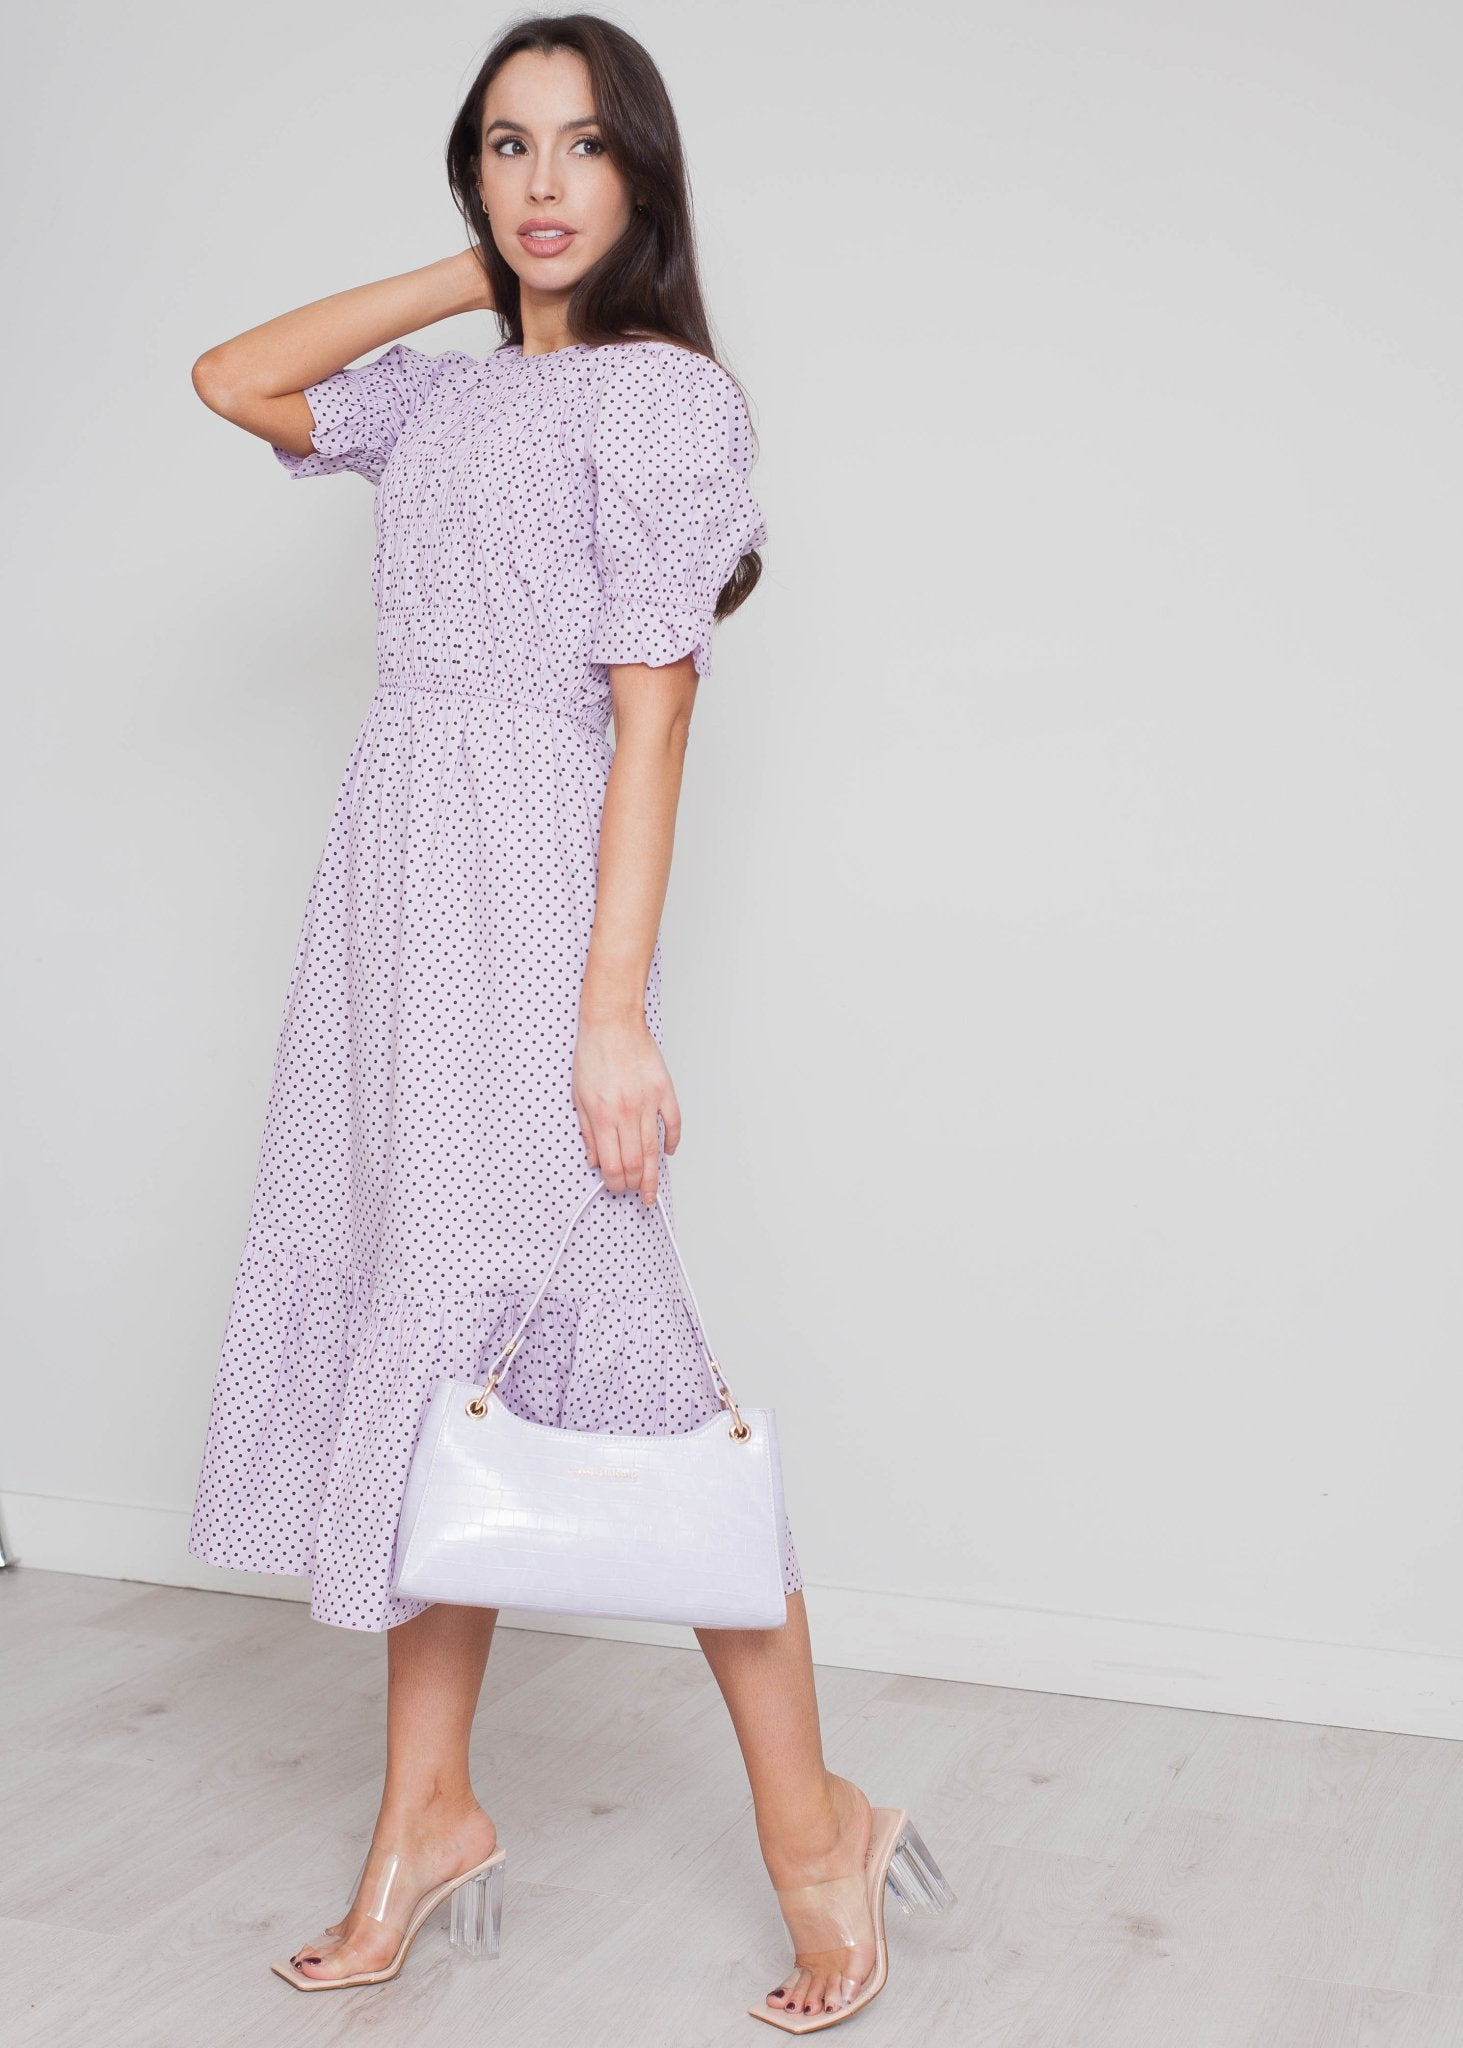 Freya Polka Dot Midi Dress In Lilac - The Walk in Wardrobe